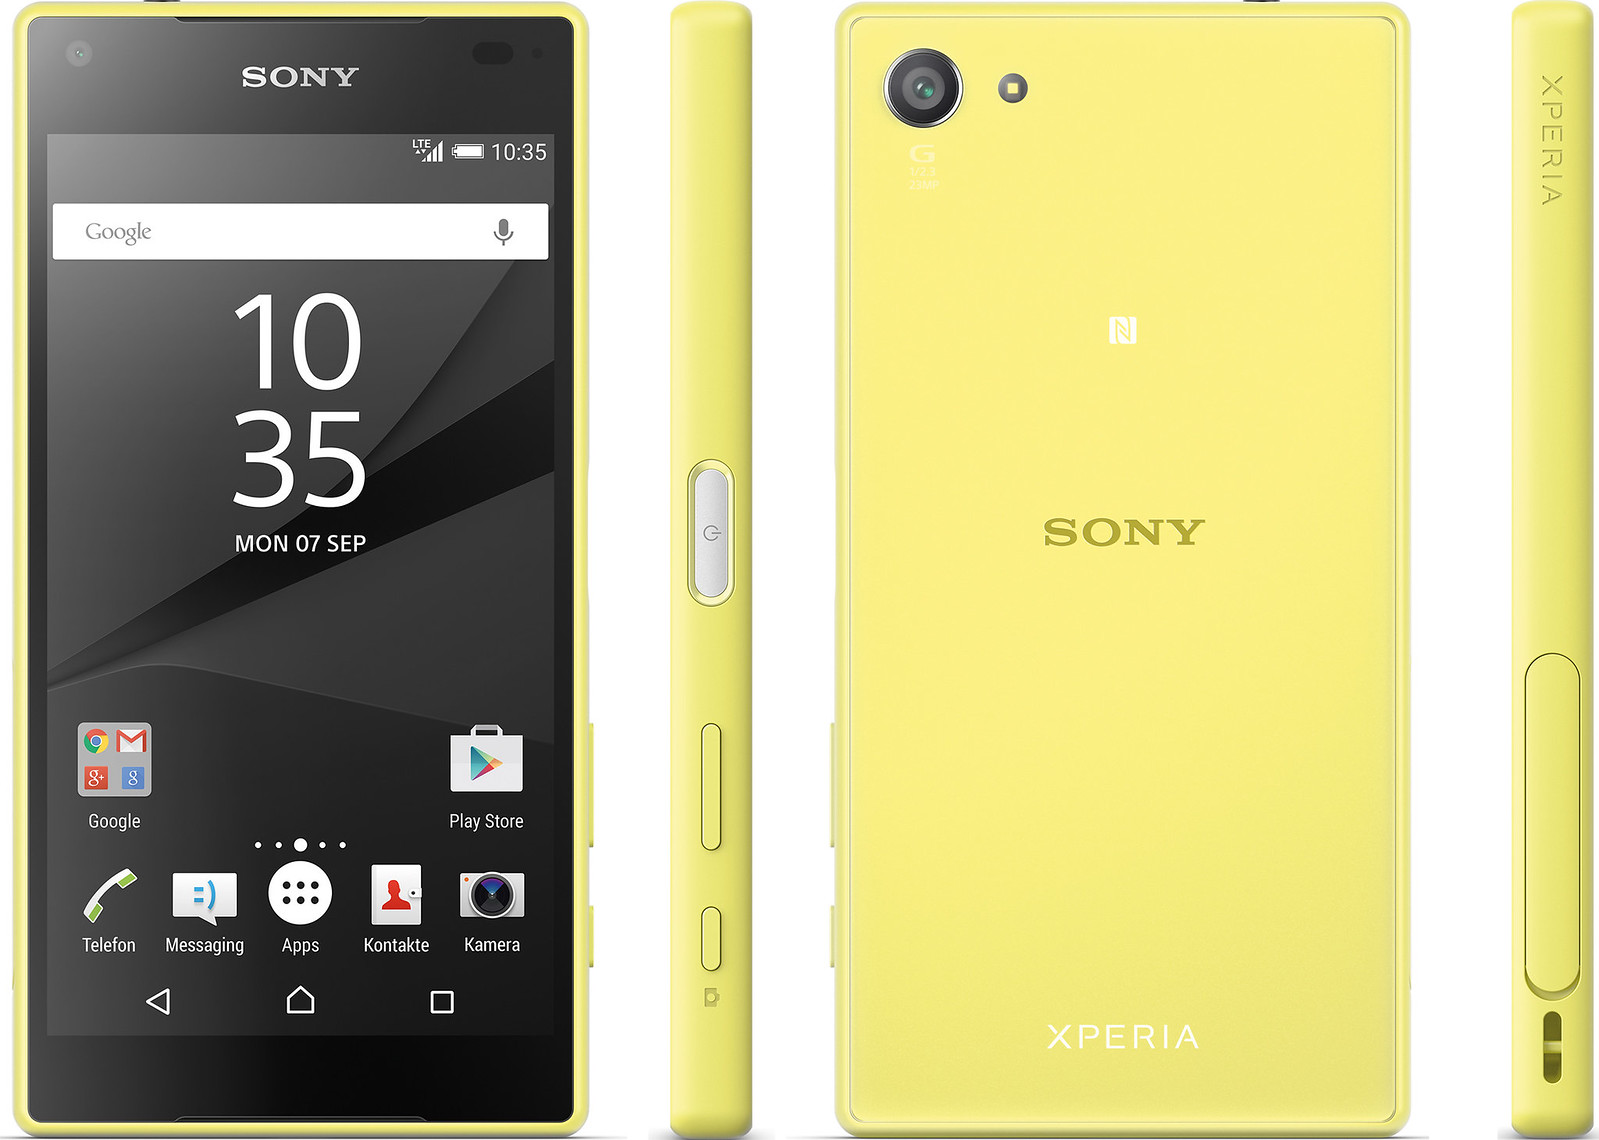 Xperia Z5 Compact 実物大の製品画像1